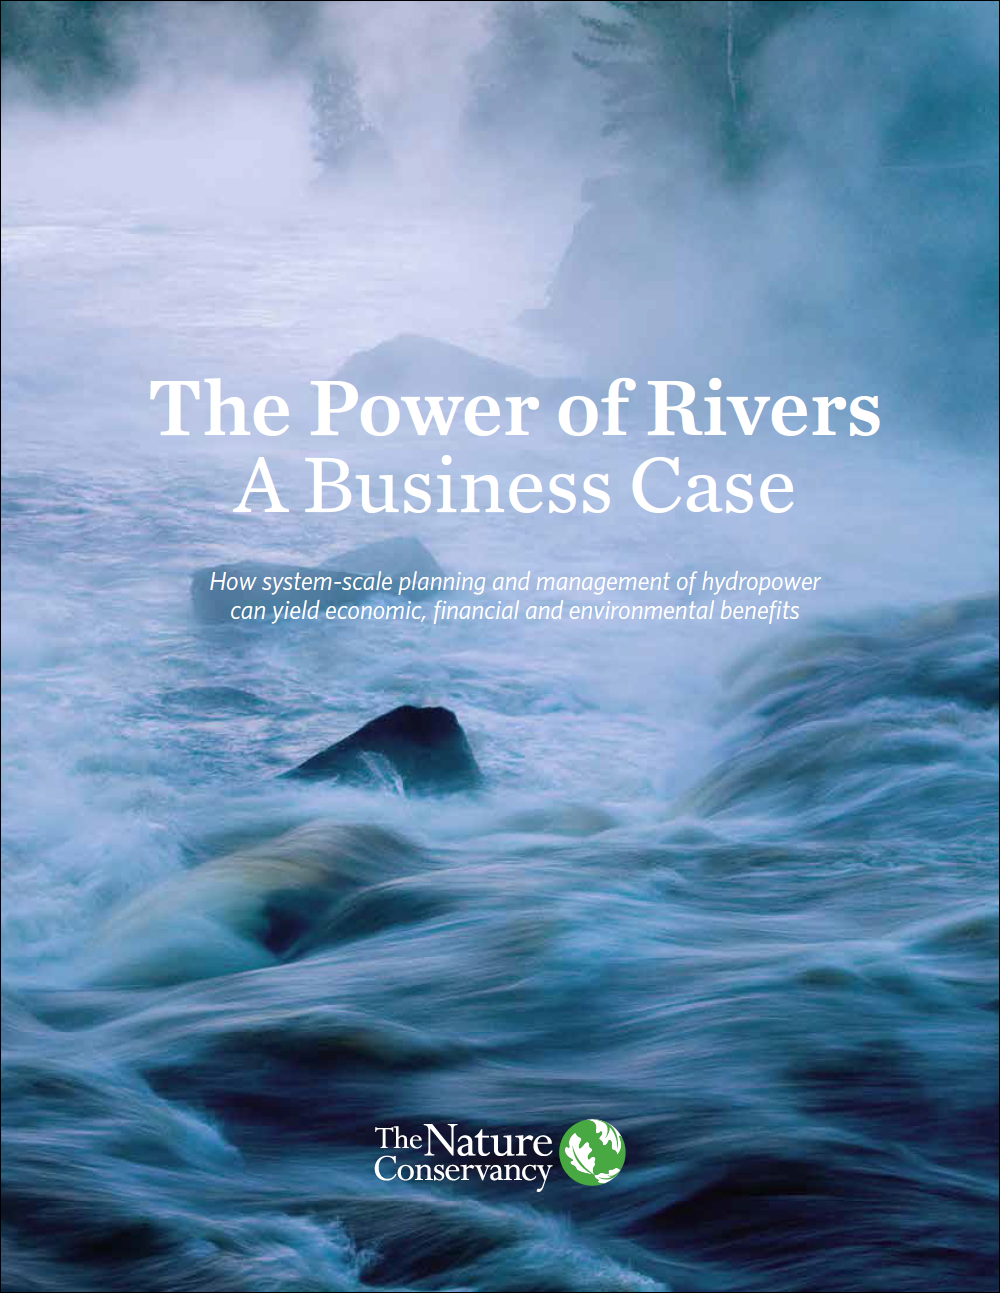 How system-scale planning and management of hydropower